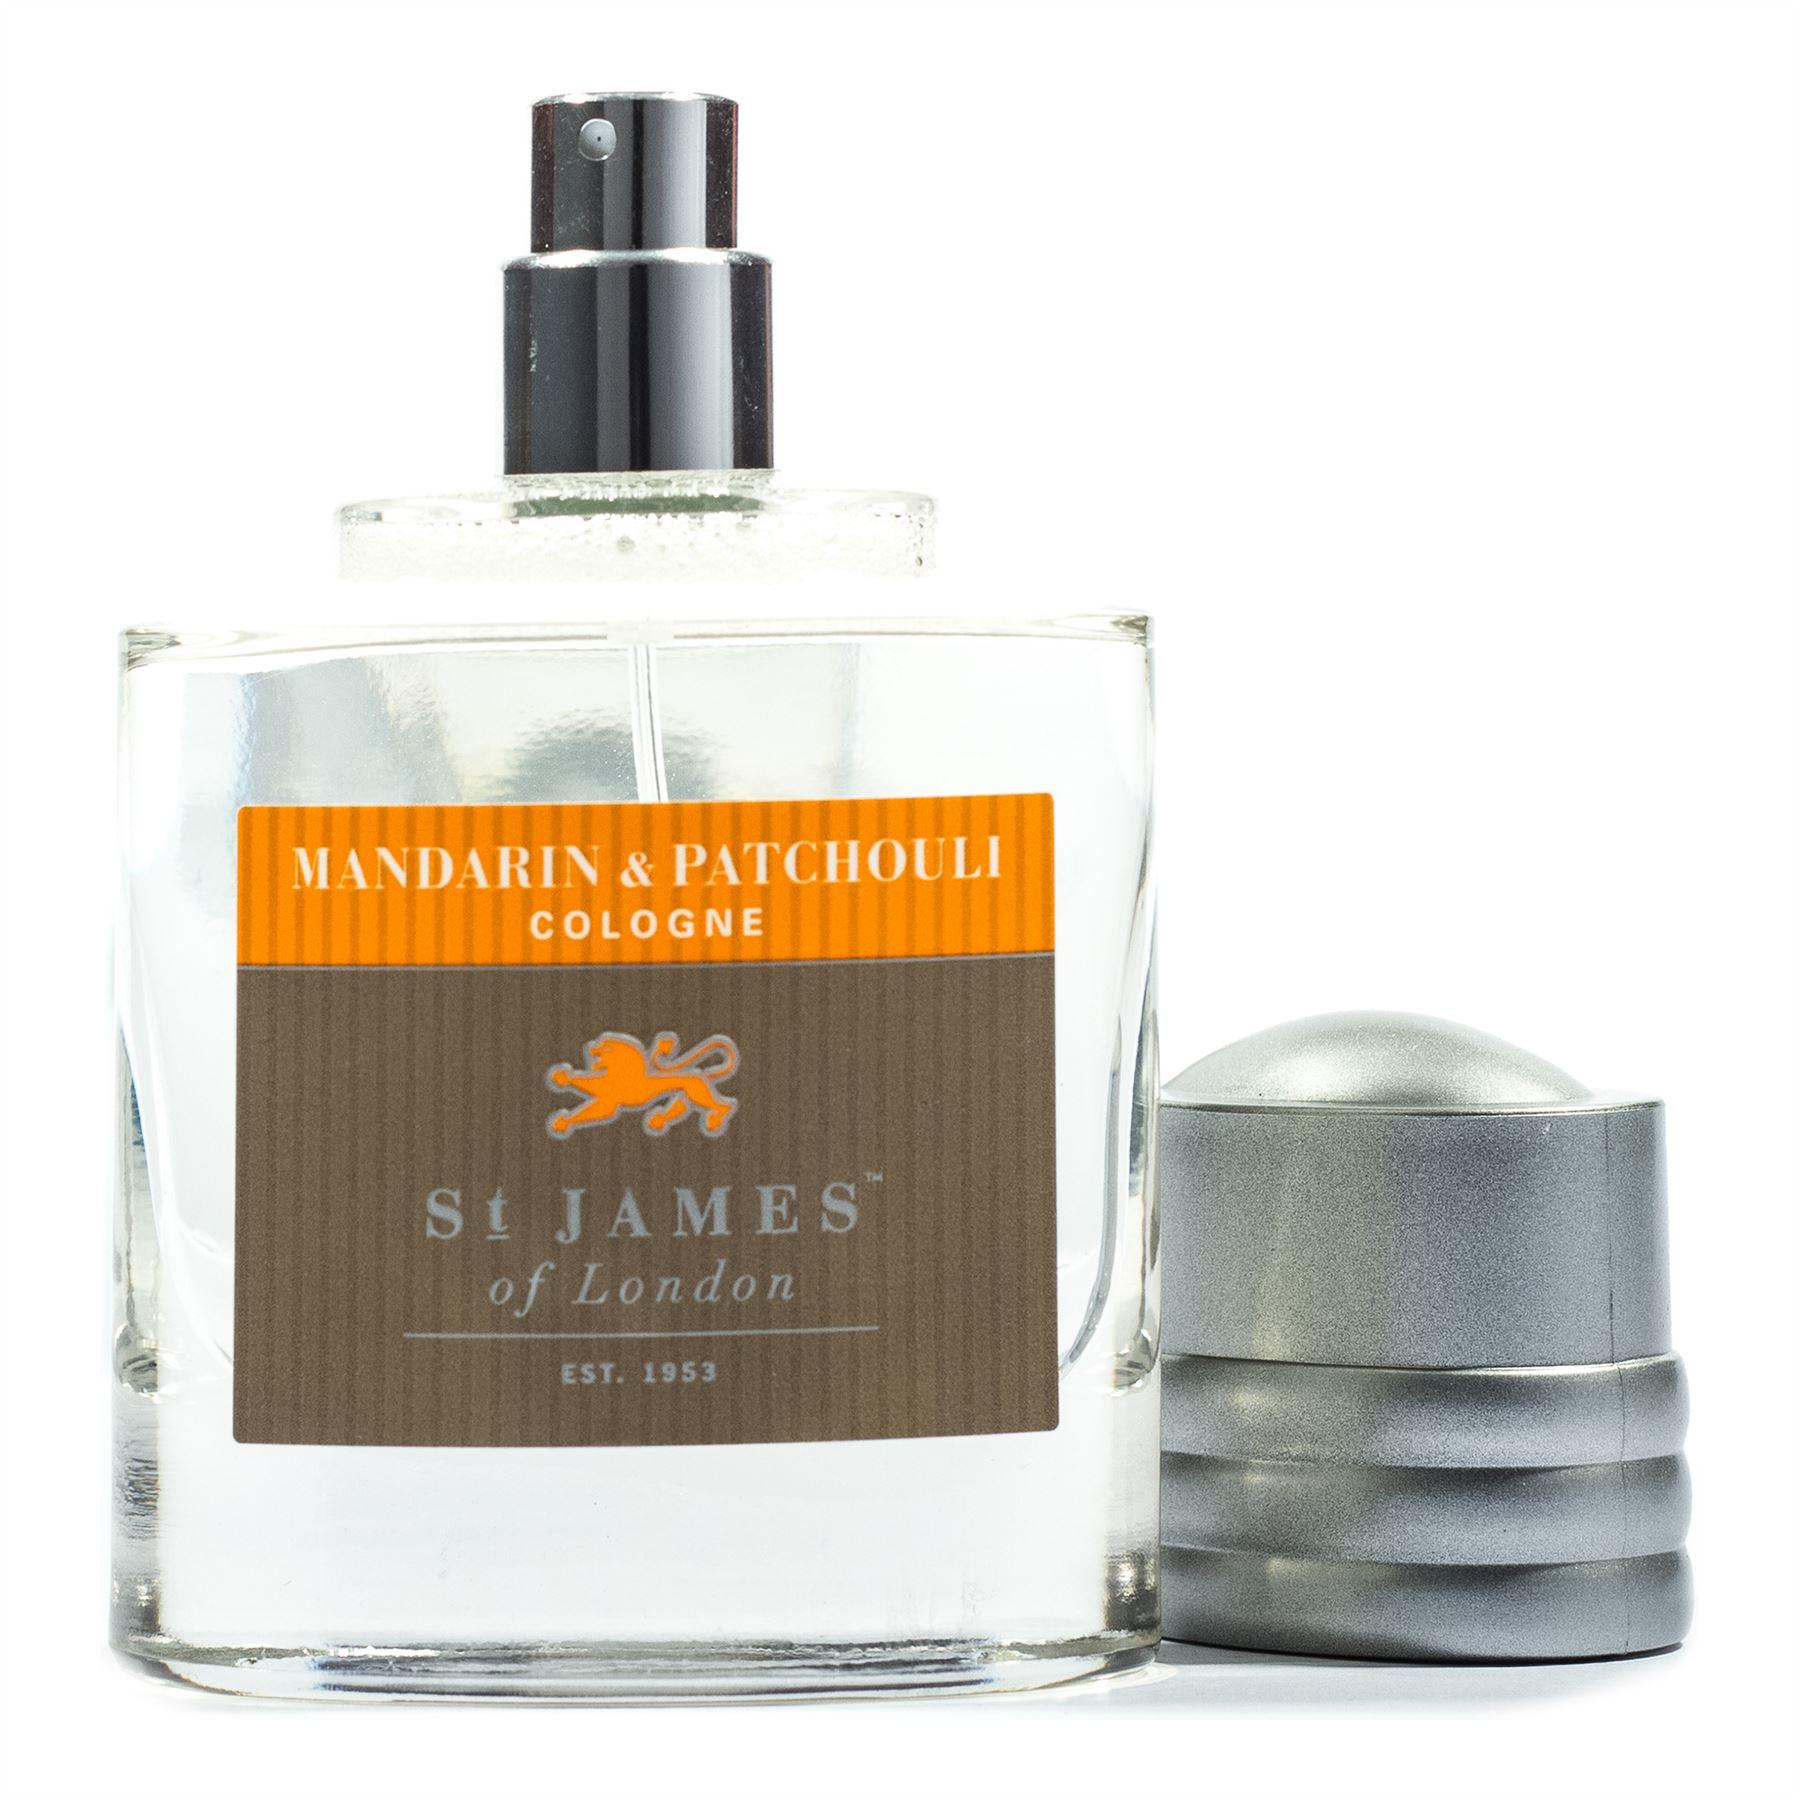 St James of London Mandarin & Patchouli Atomiser Cologne